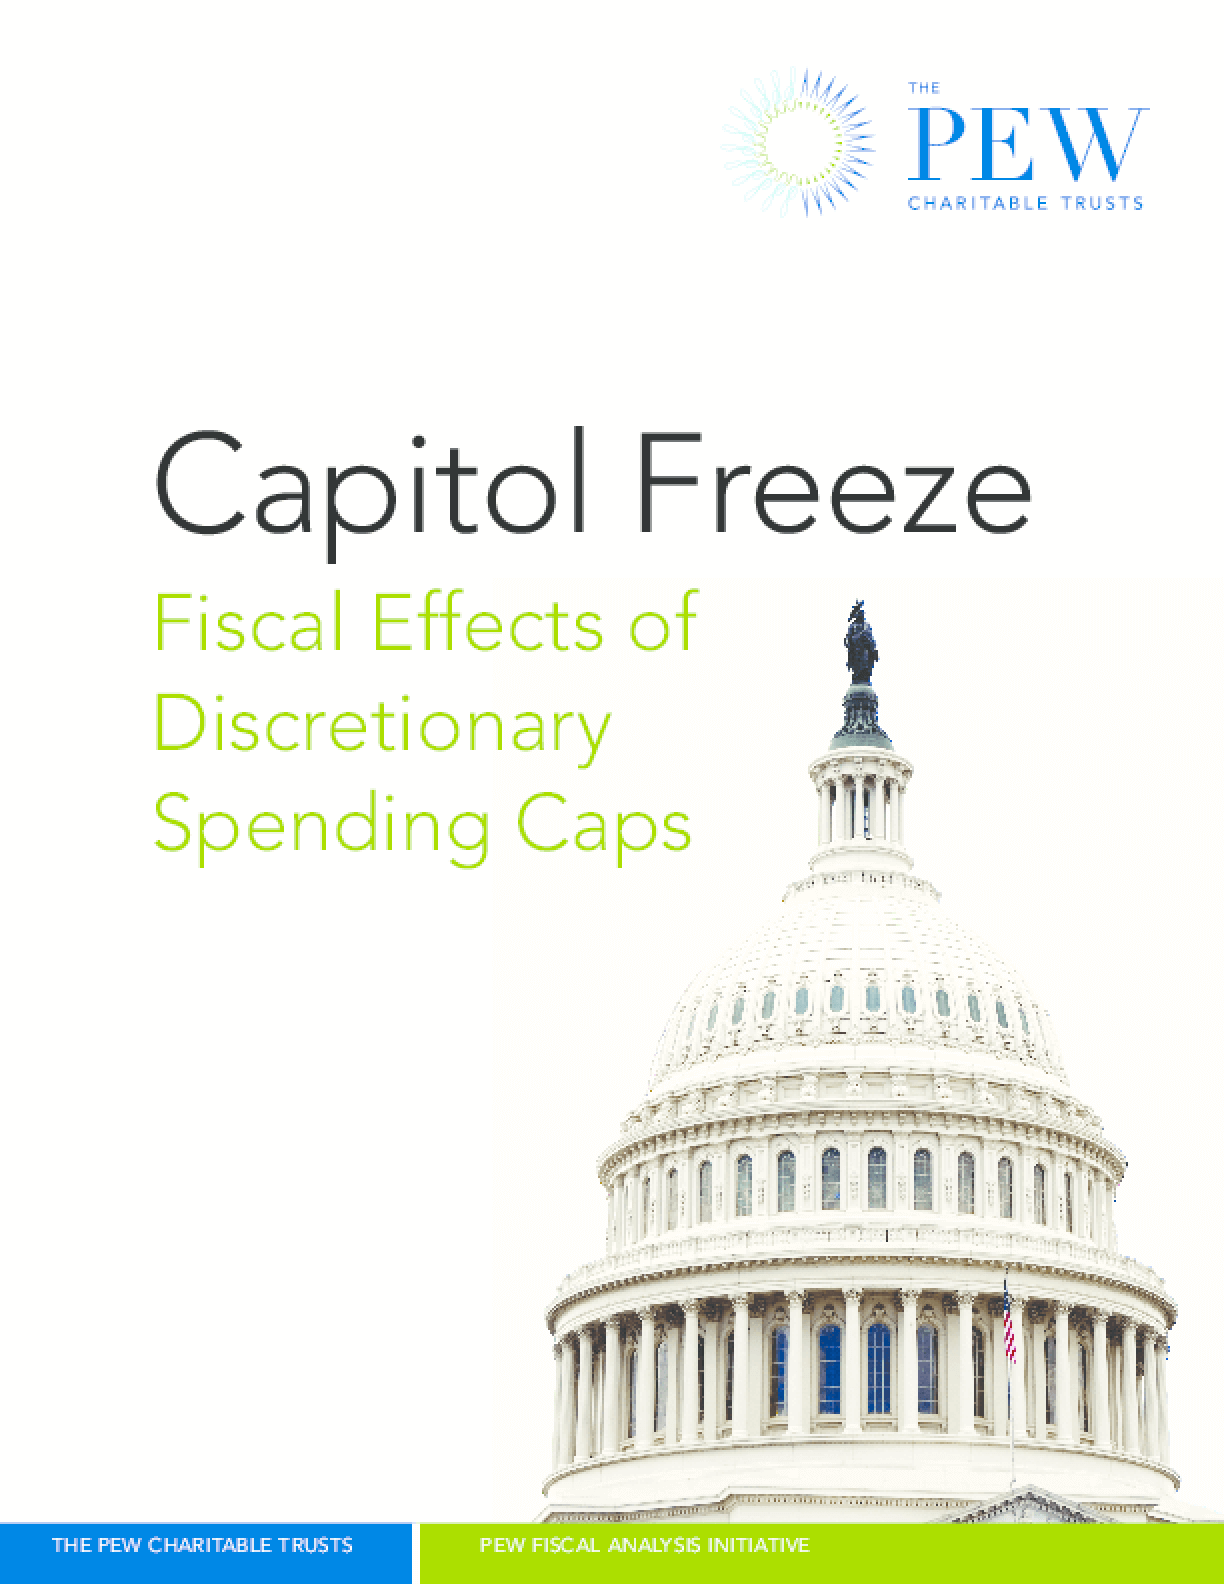 Capitol Freeze: Fiscal Effects of Discretionary Spending Caps